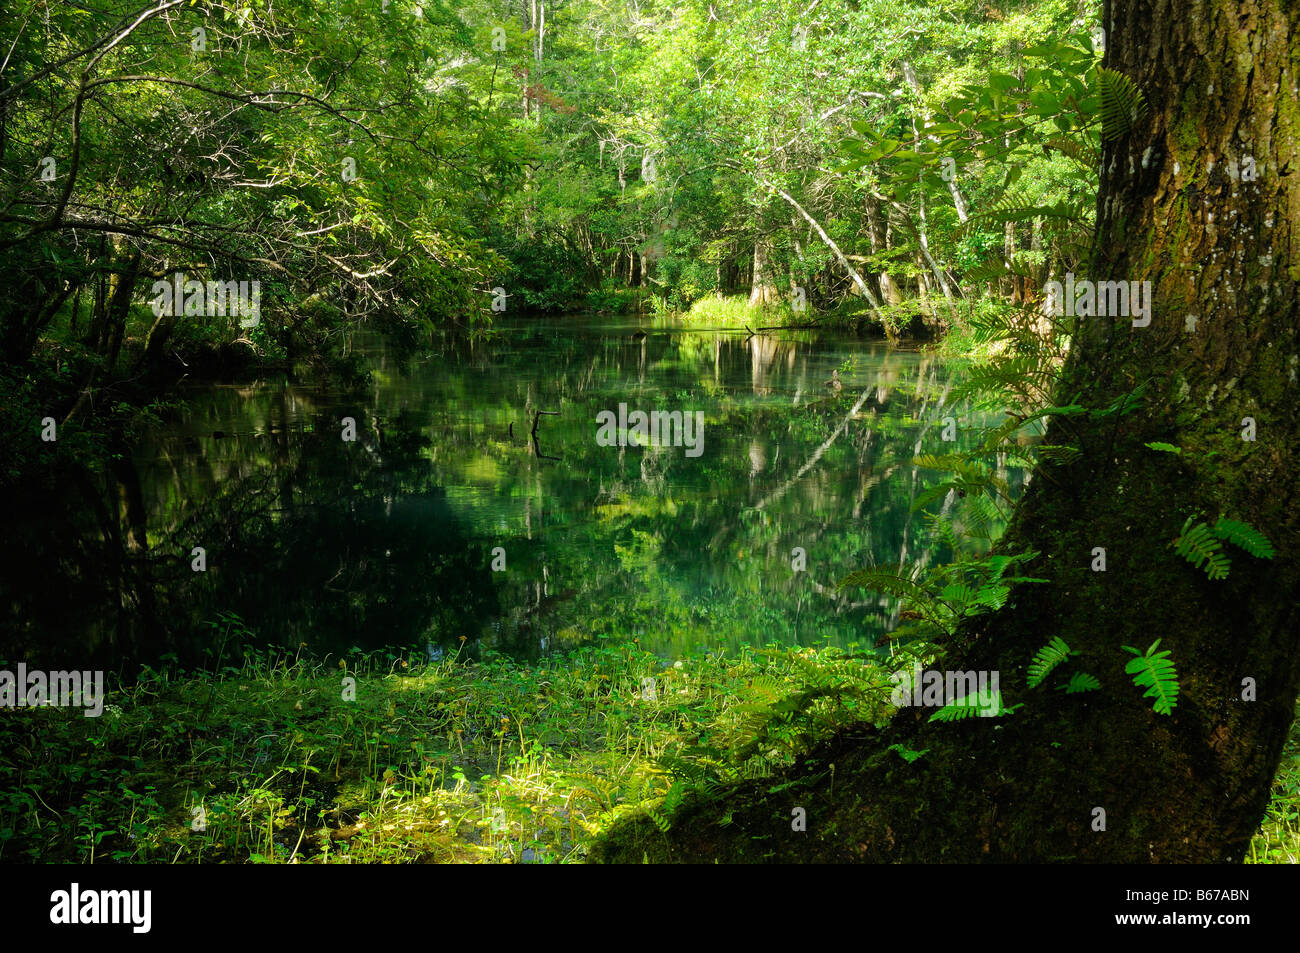 Markus s Fluss Florida Stockbild